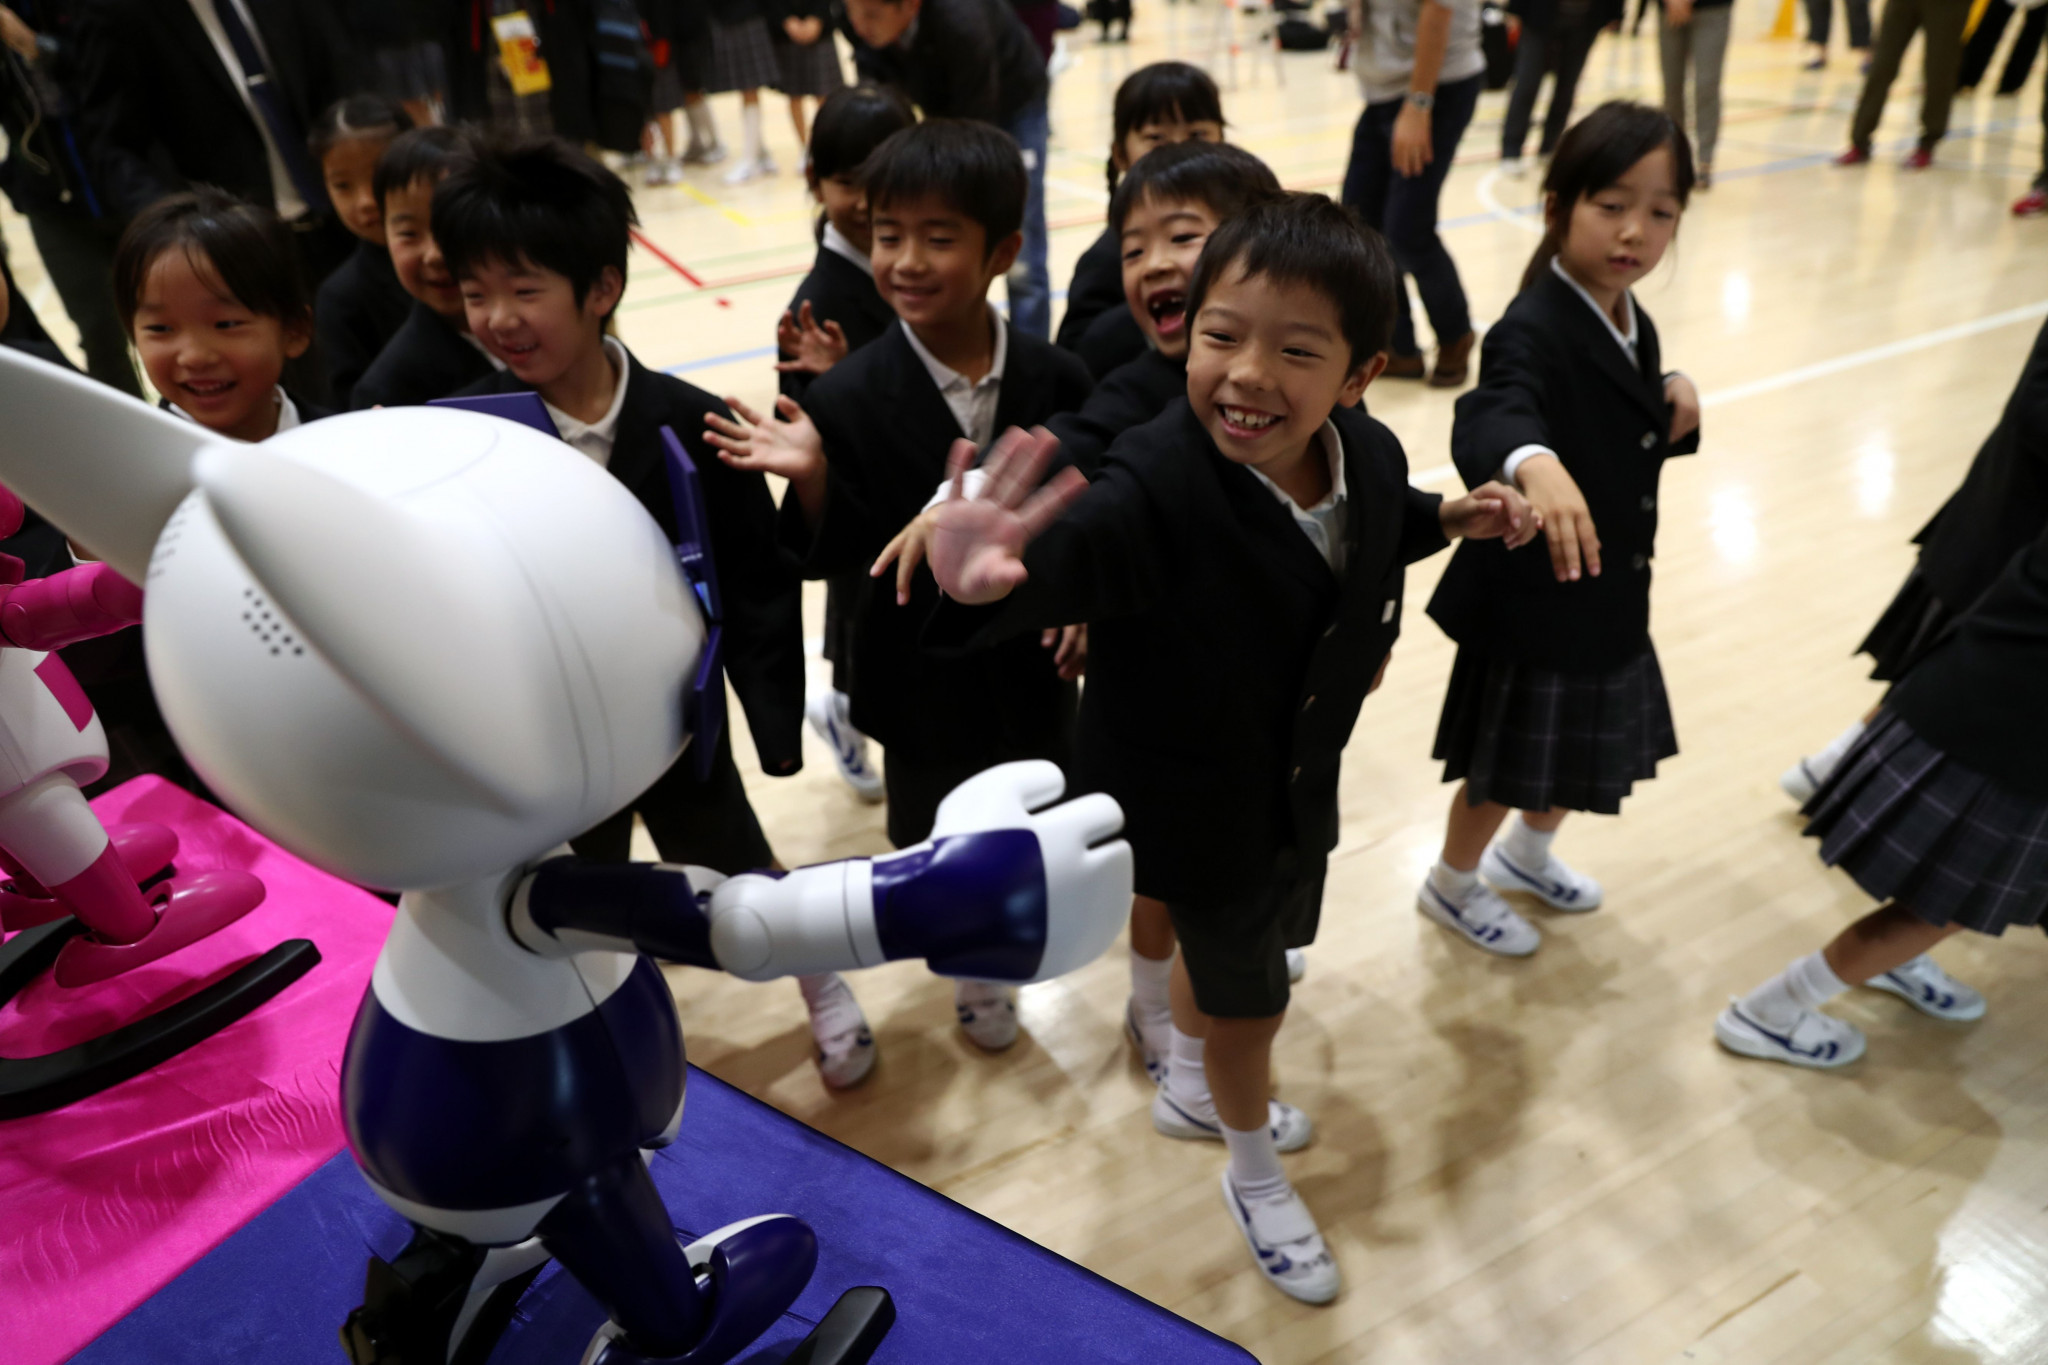 The robots interacted with the children at the school ©Getty Images